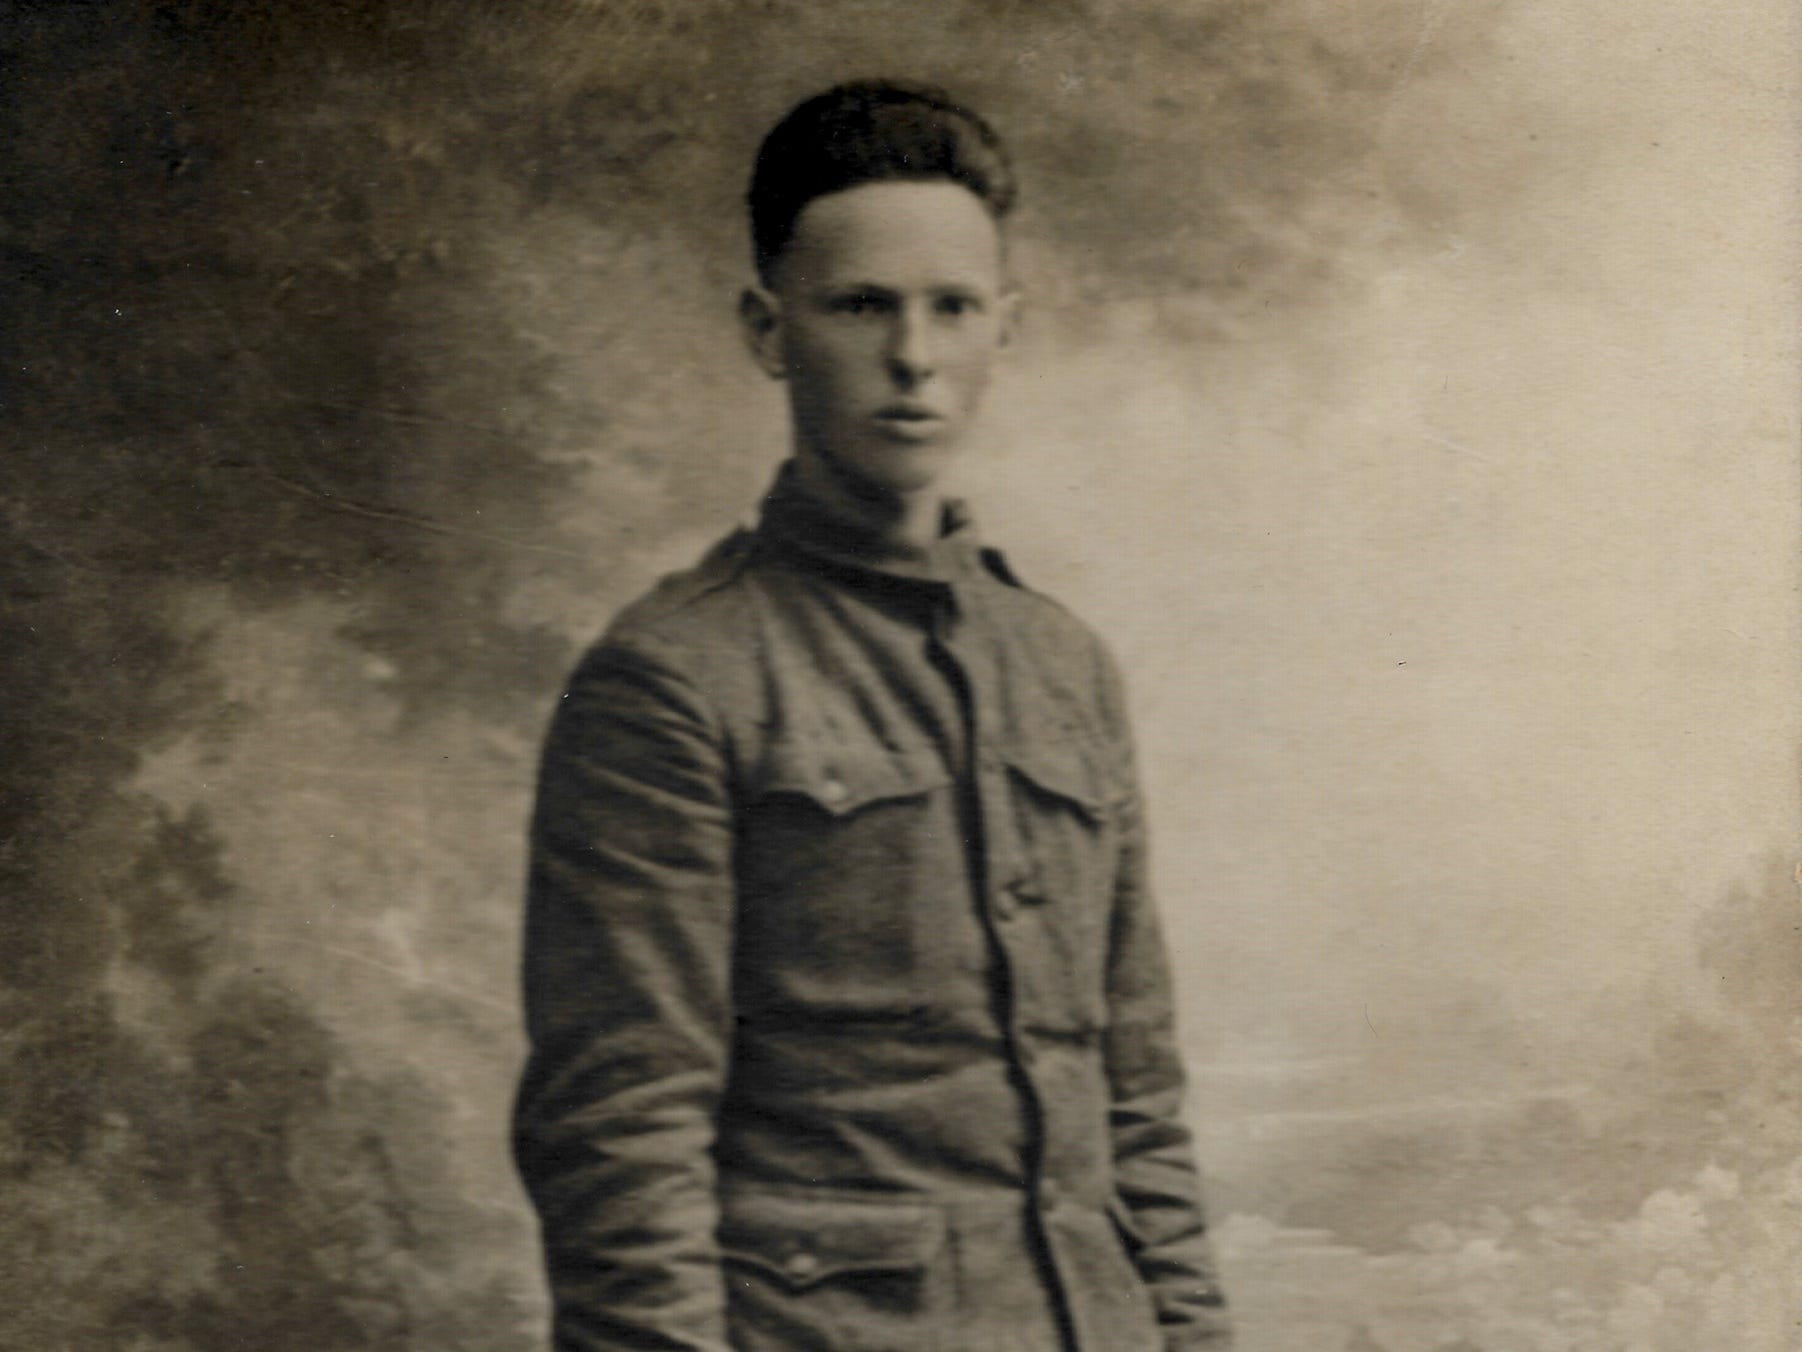 In August 1918, Harold Reilly sent home a portrait he had made in a French studio and in the letter apologized for his appearance. Reilly left Marquette University in May 1917 to enlist in the U.S. Marines where he was assigned to the 81st Co., 6th Machine Gun Battalion. His unit arrived in France on Dec. 28, 1917.